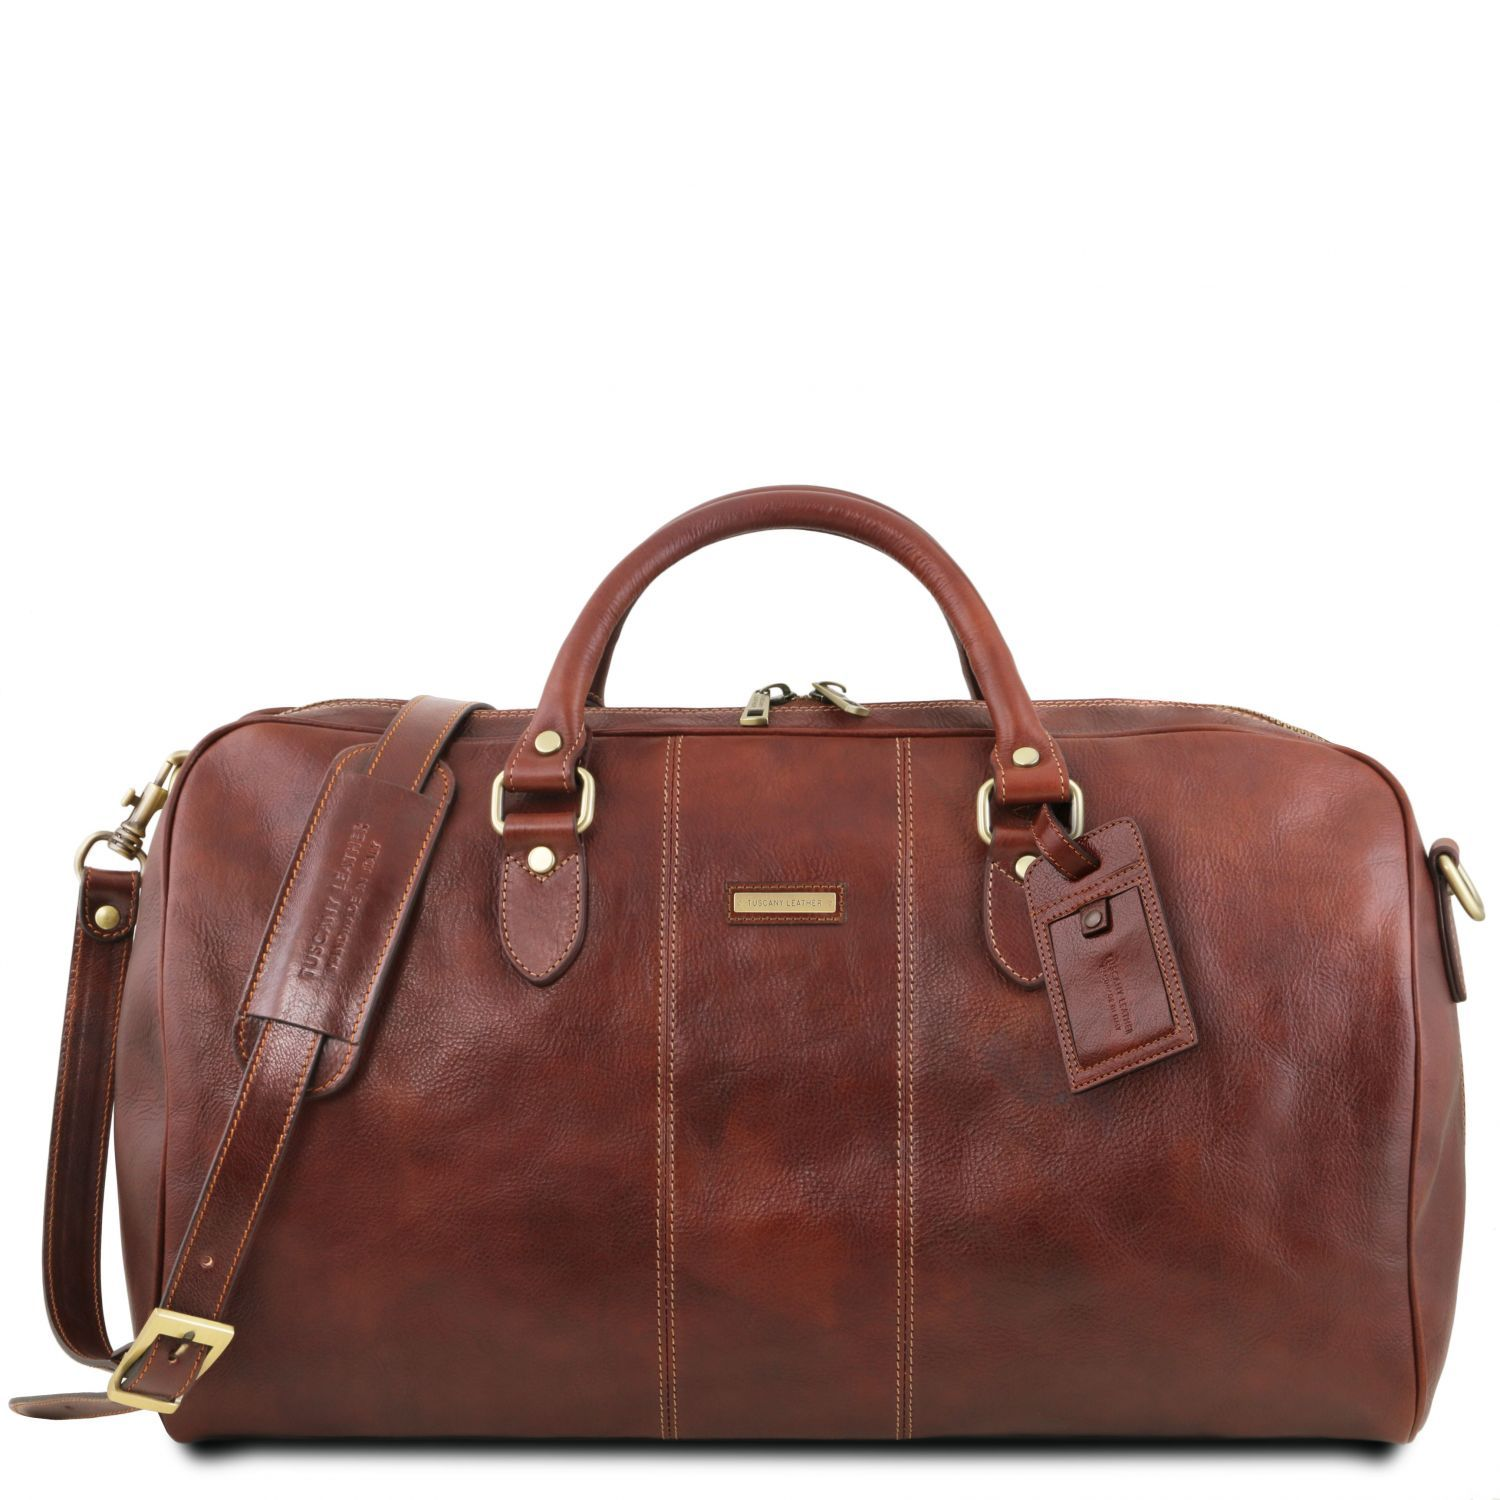 Lisbona - Travel leather duffle bag - Large size (TL141657) - Leather Travel bags | DILUSSOBAGS